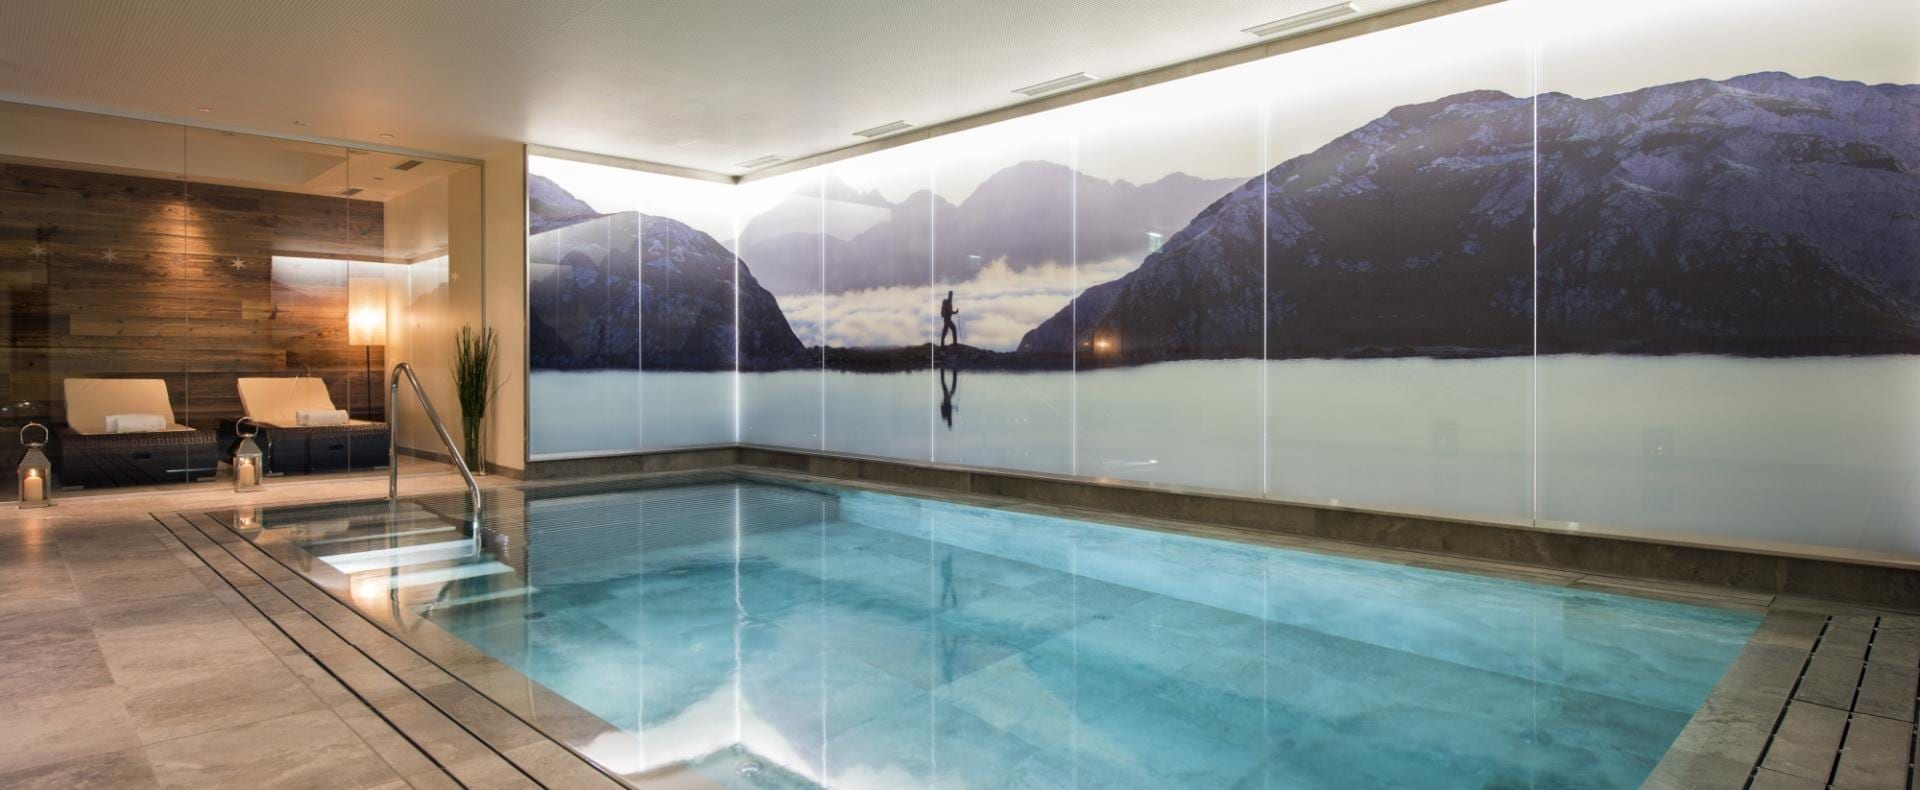 Pool-Eden-Rock-St-Anton-Ultimate-Luxury-Chalets-UltraVilla